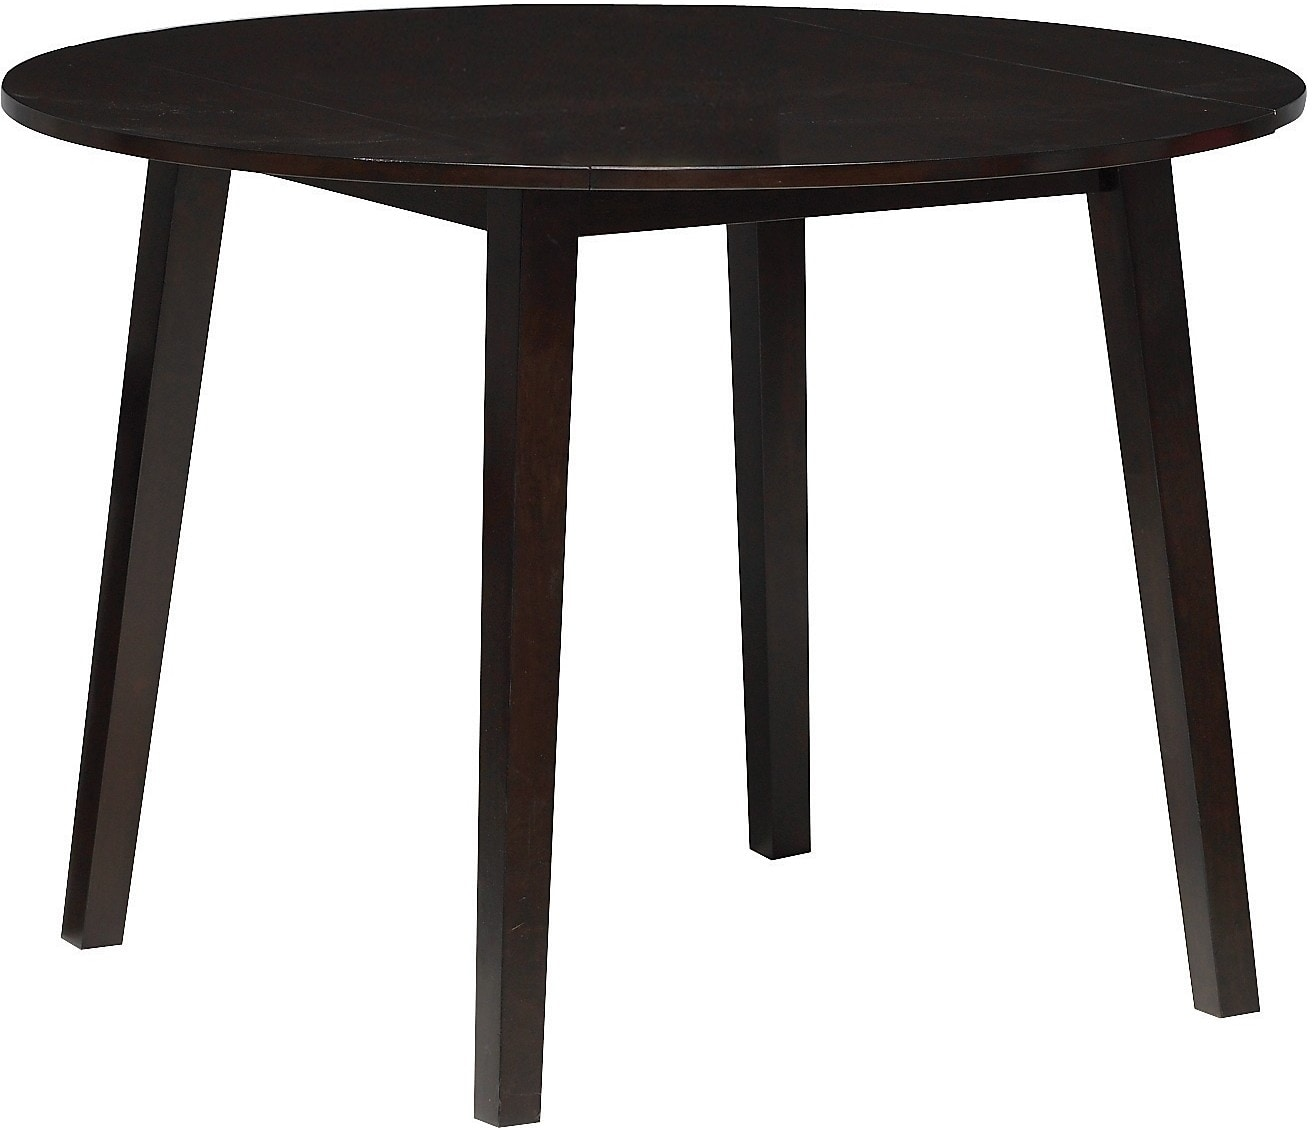 Dining Room Furniture - Adara Round Drop-Leaf Dining Table